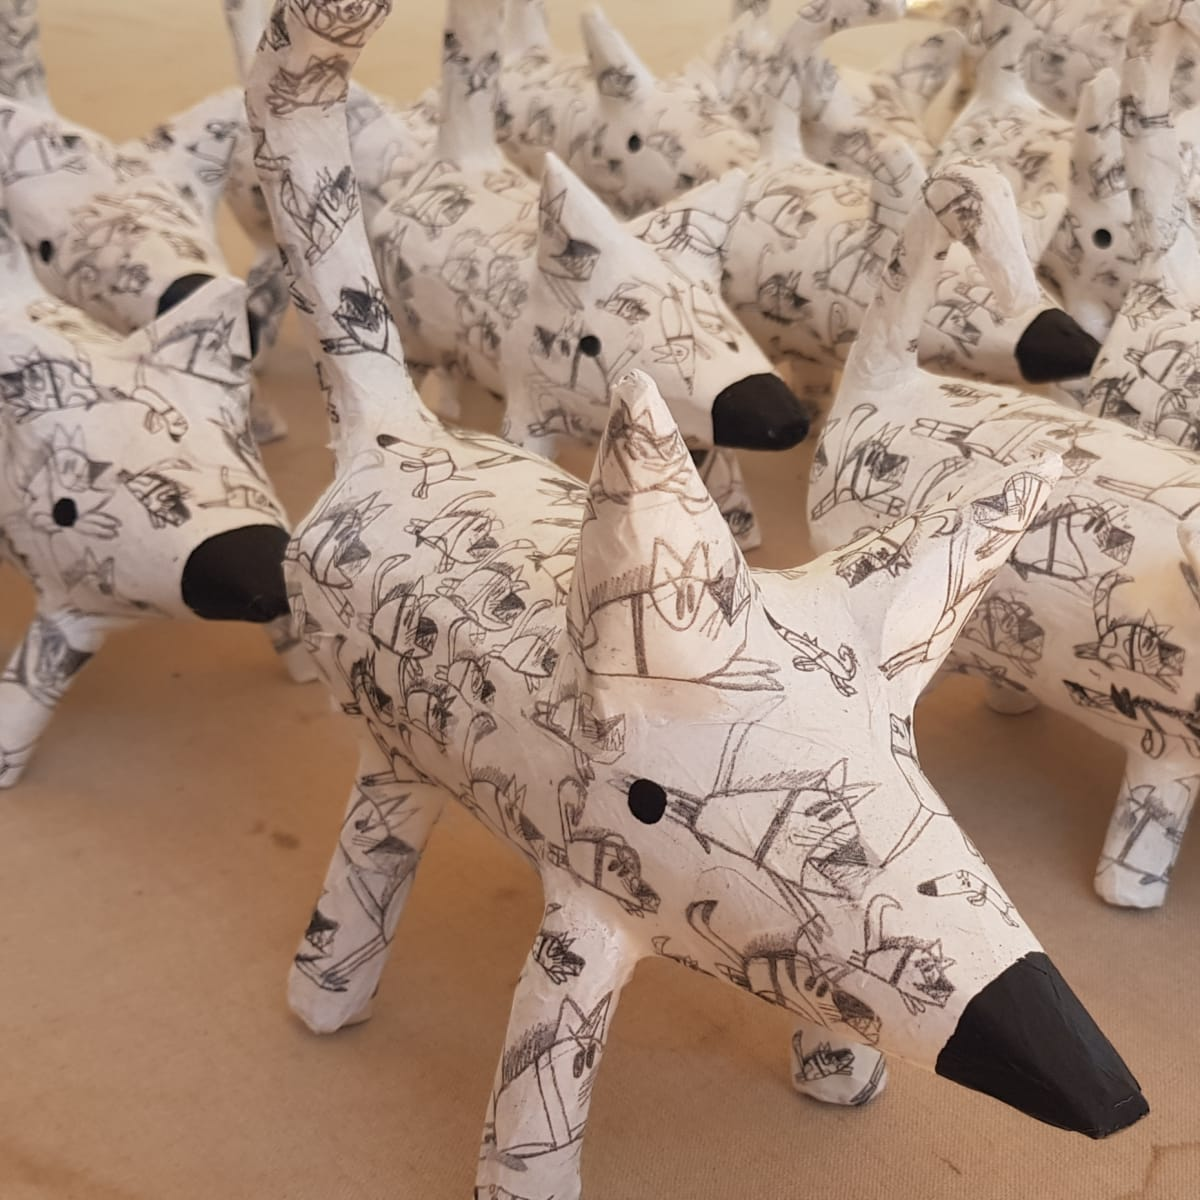 Dion Beasley Cheeky Dog, 2019 Paper-mache Various